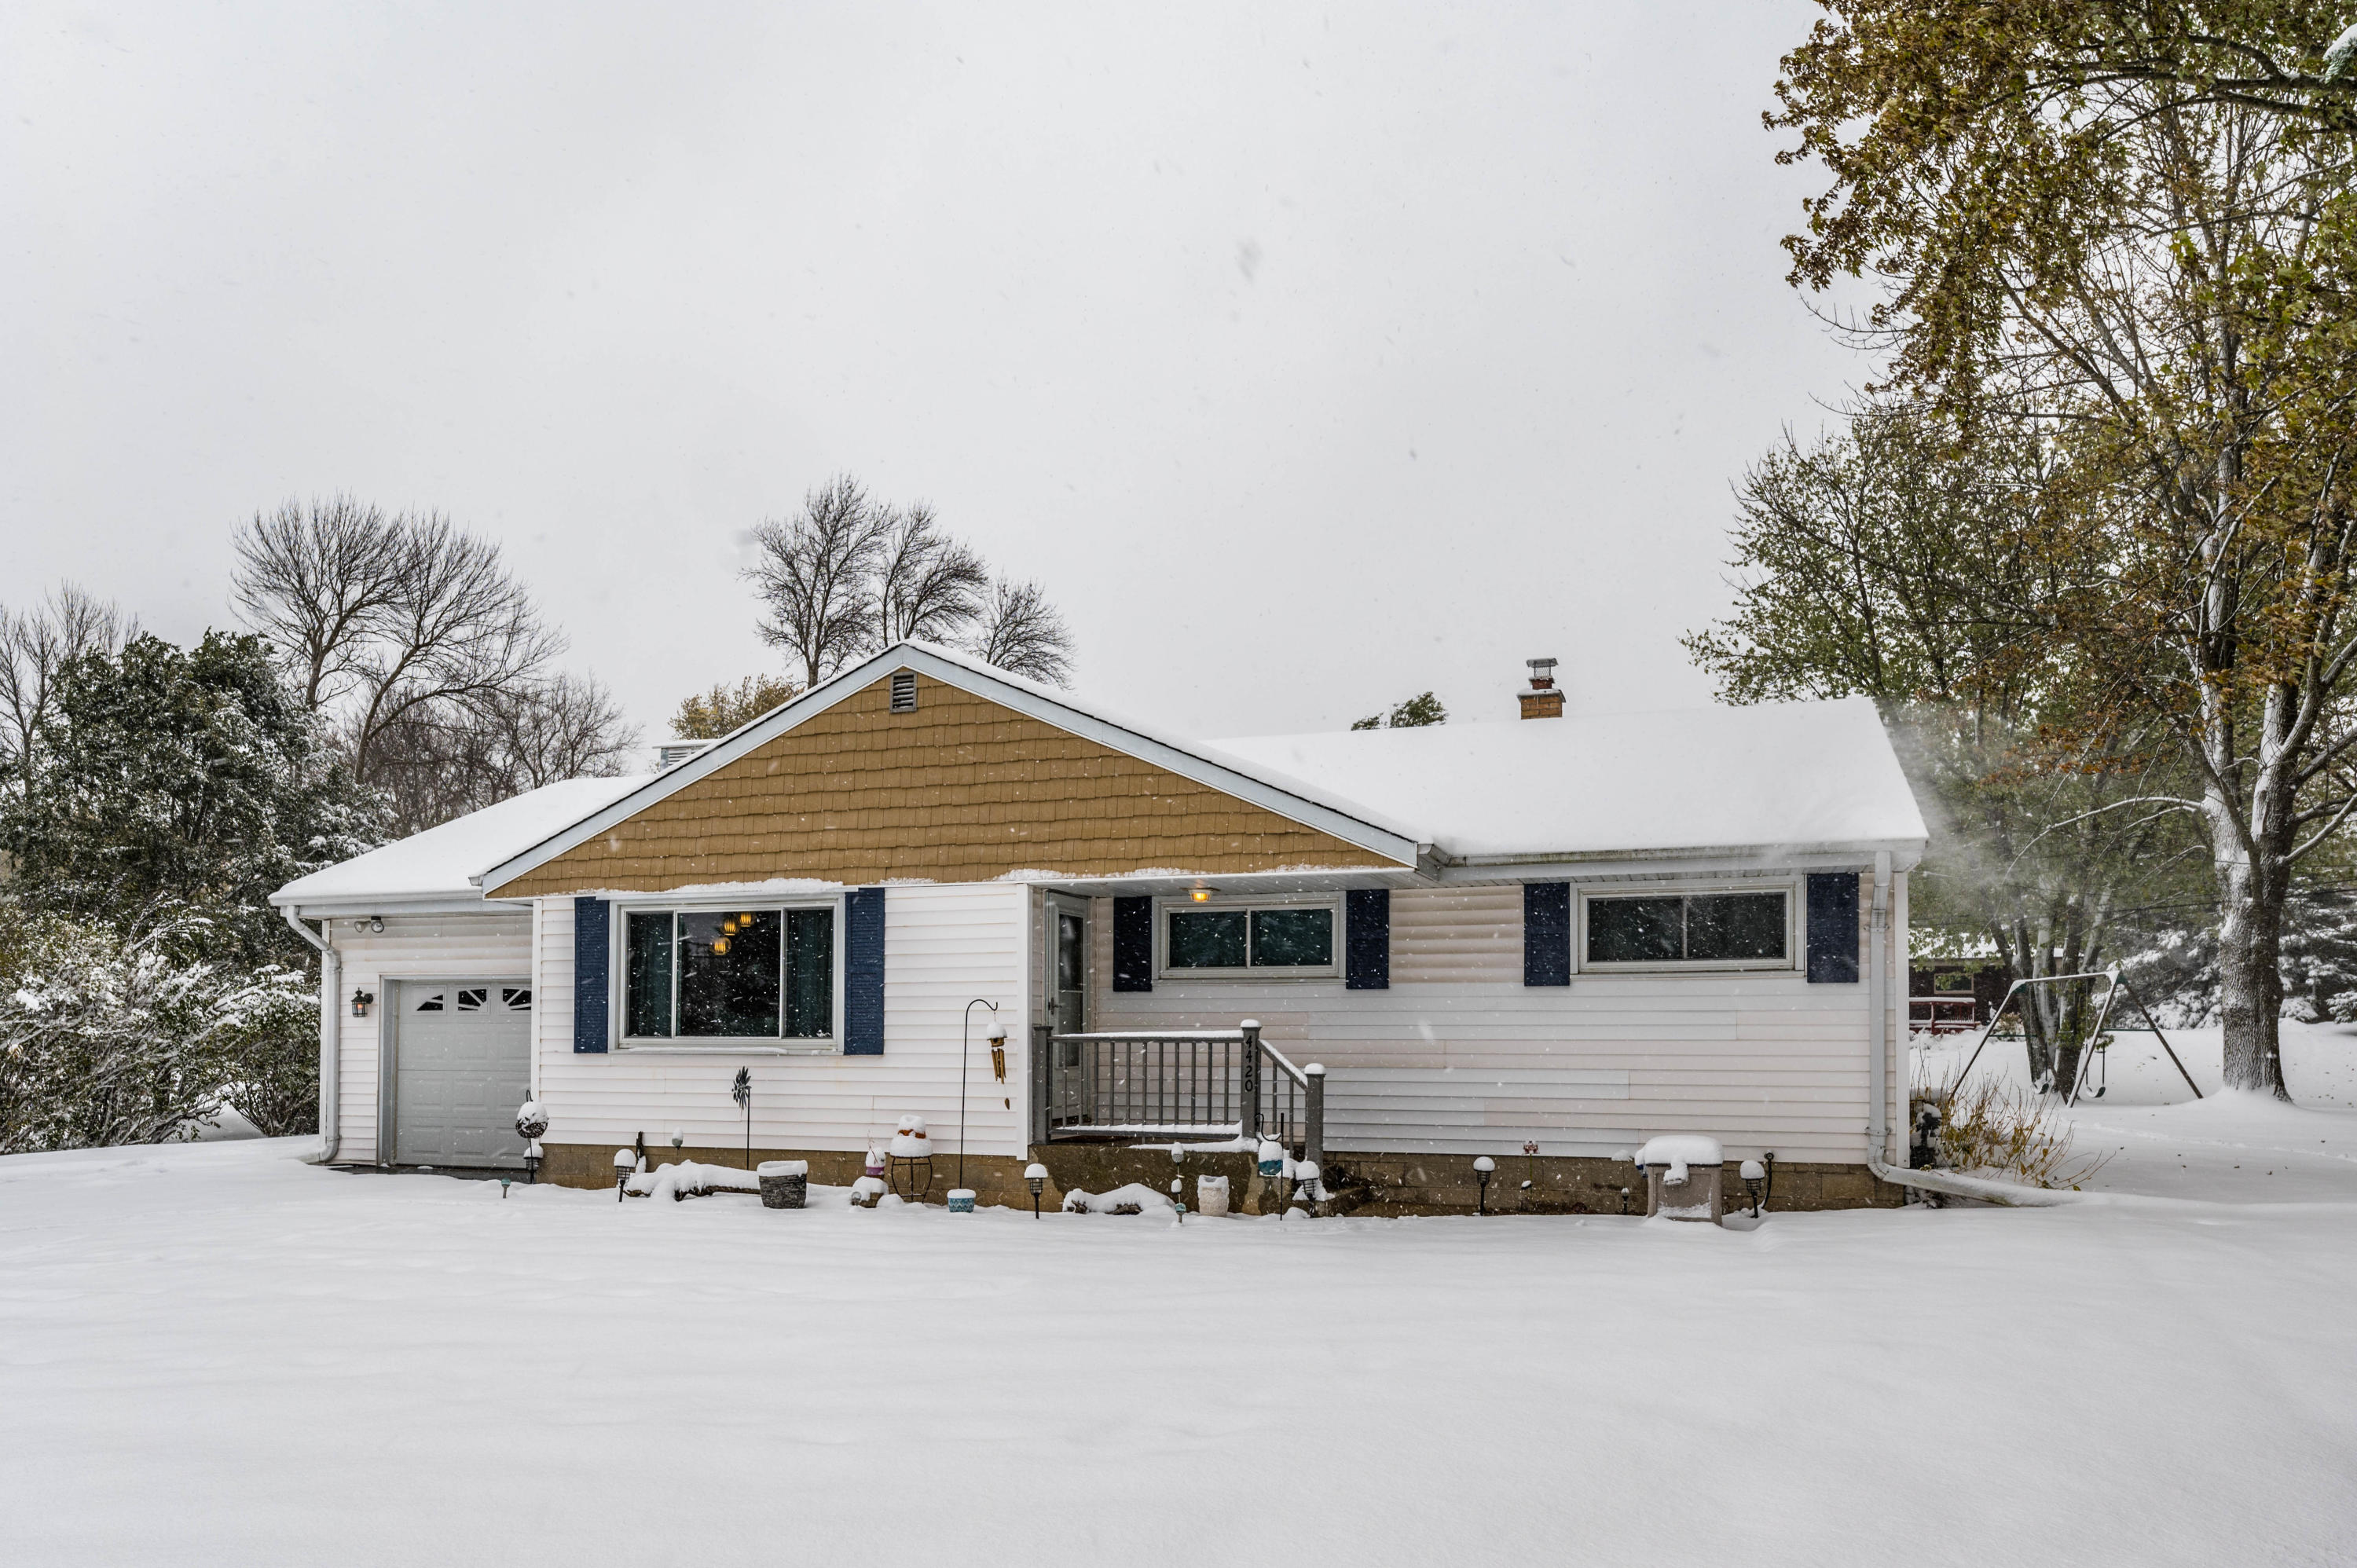 4420 Brookfield Rd, Brookfield, Wisconsin 53045, 3 Bedrooms Bedrooms, 5 Rooms Rooms,1 BathroomBathrooms,Single-Family,For Sale,Brookfield Rd,1666269